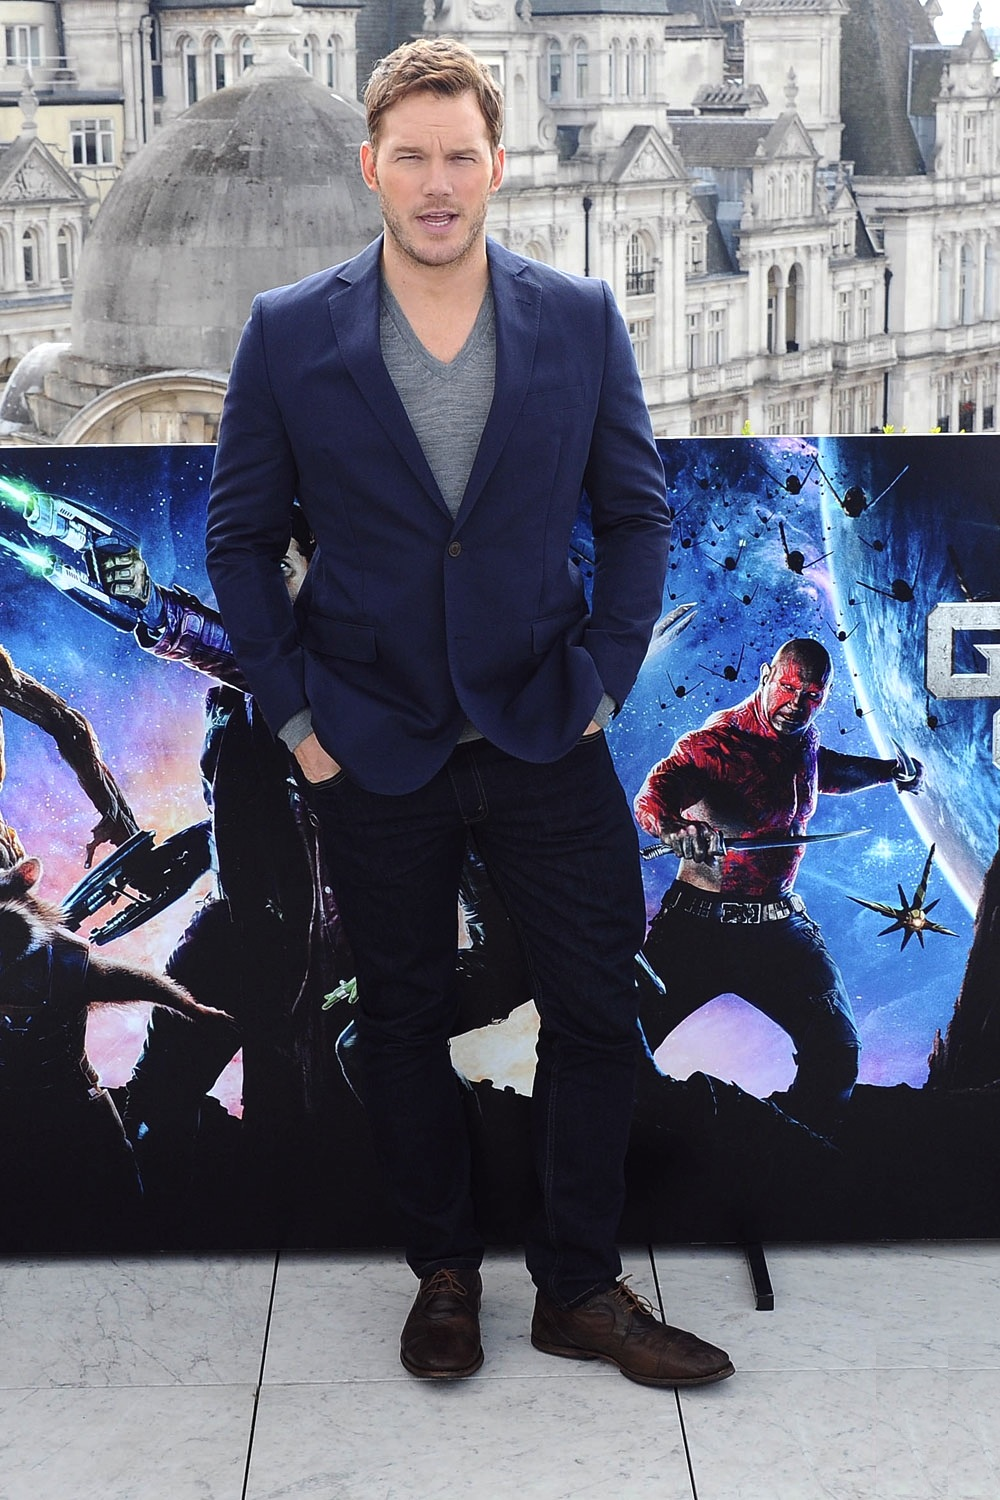 Chris-Pratt-Guardians-Galaxy-London-Photocall-Tom-Lorenzo-Site-TLO-1.jpg